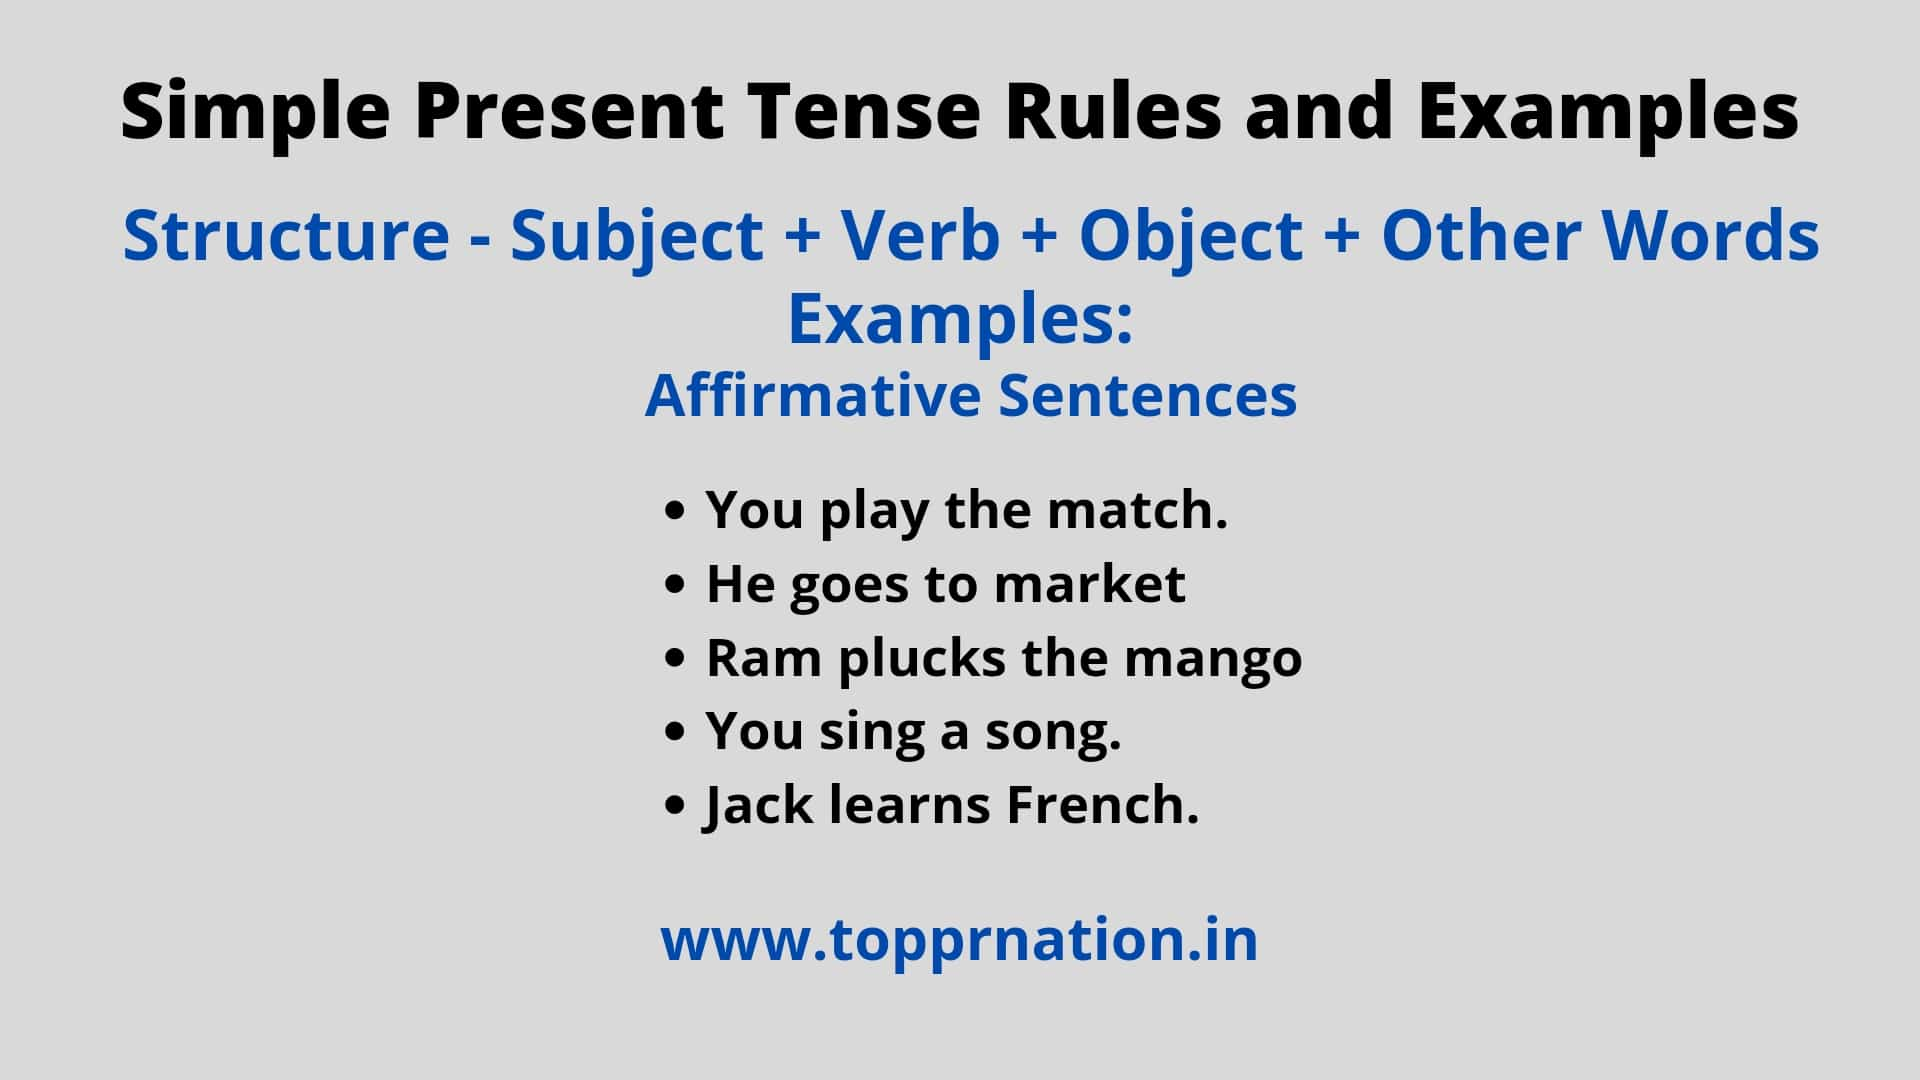 Simple Present Tense Present Indefinite Tense   Rules and Examples